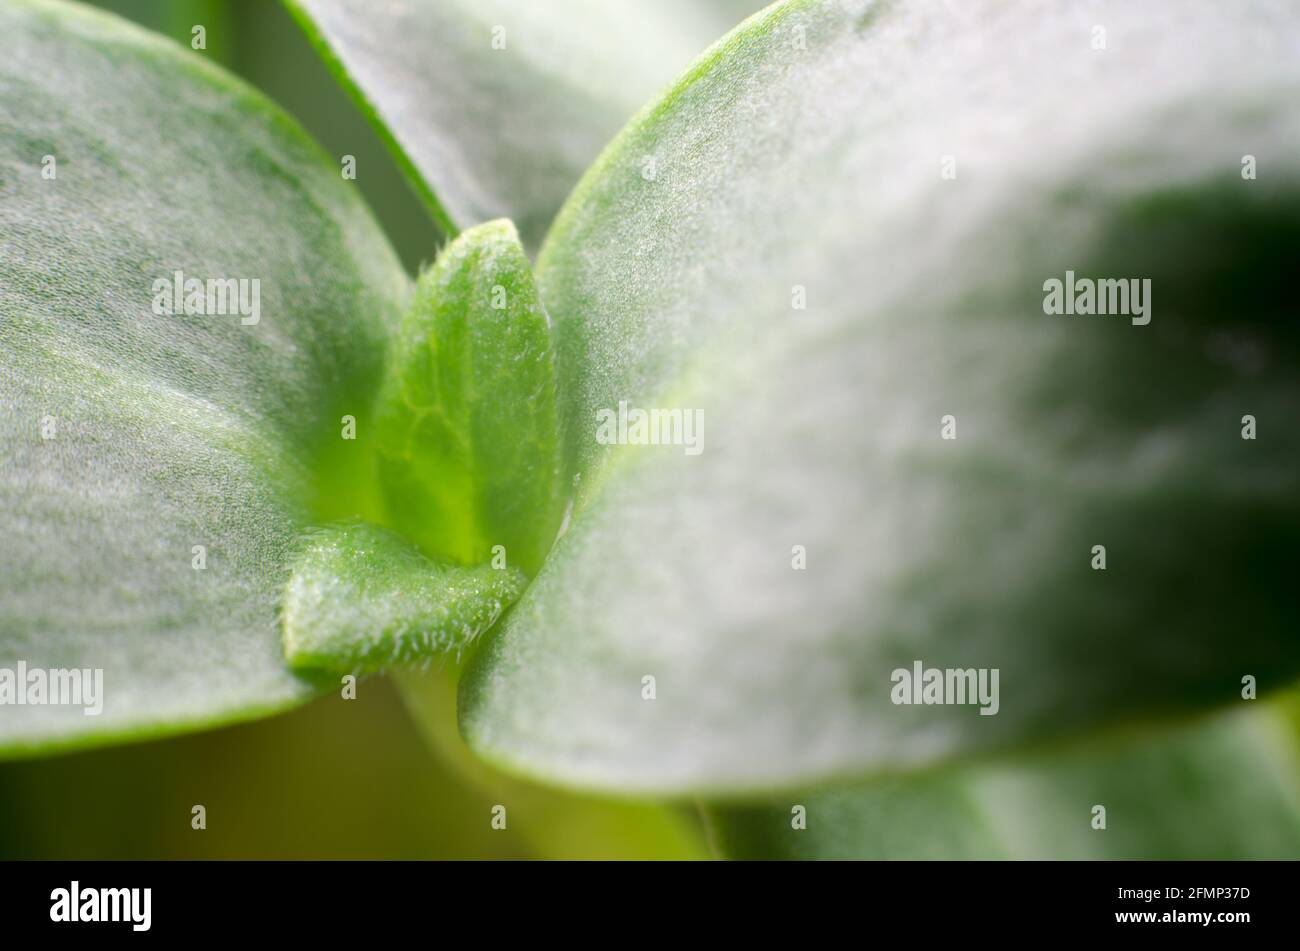 Sunflower sprouts macro photography. Food for vegetarians. Healthy food concept Stock Photo